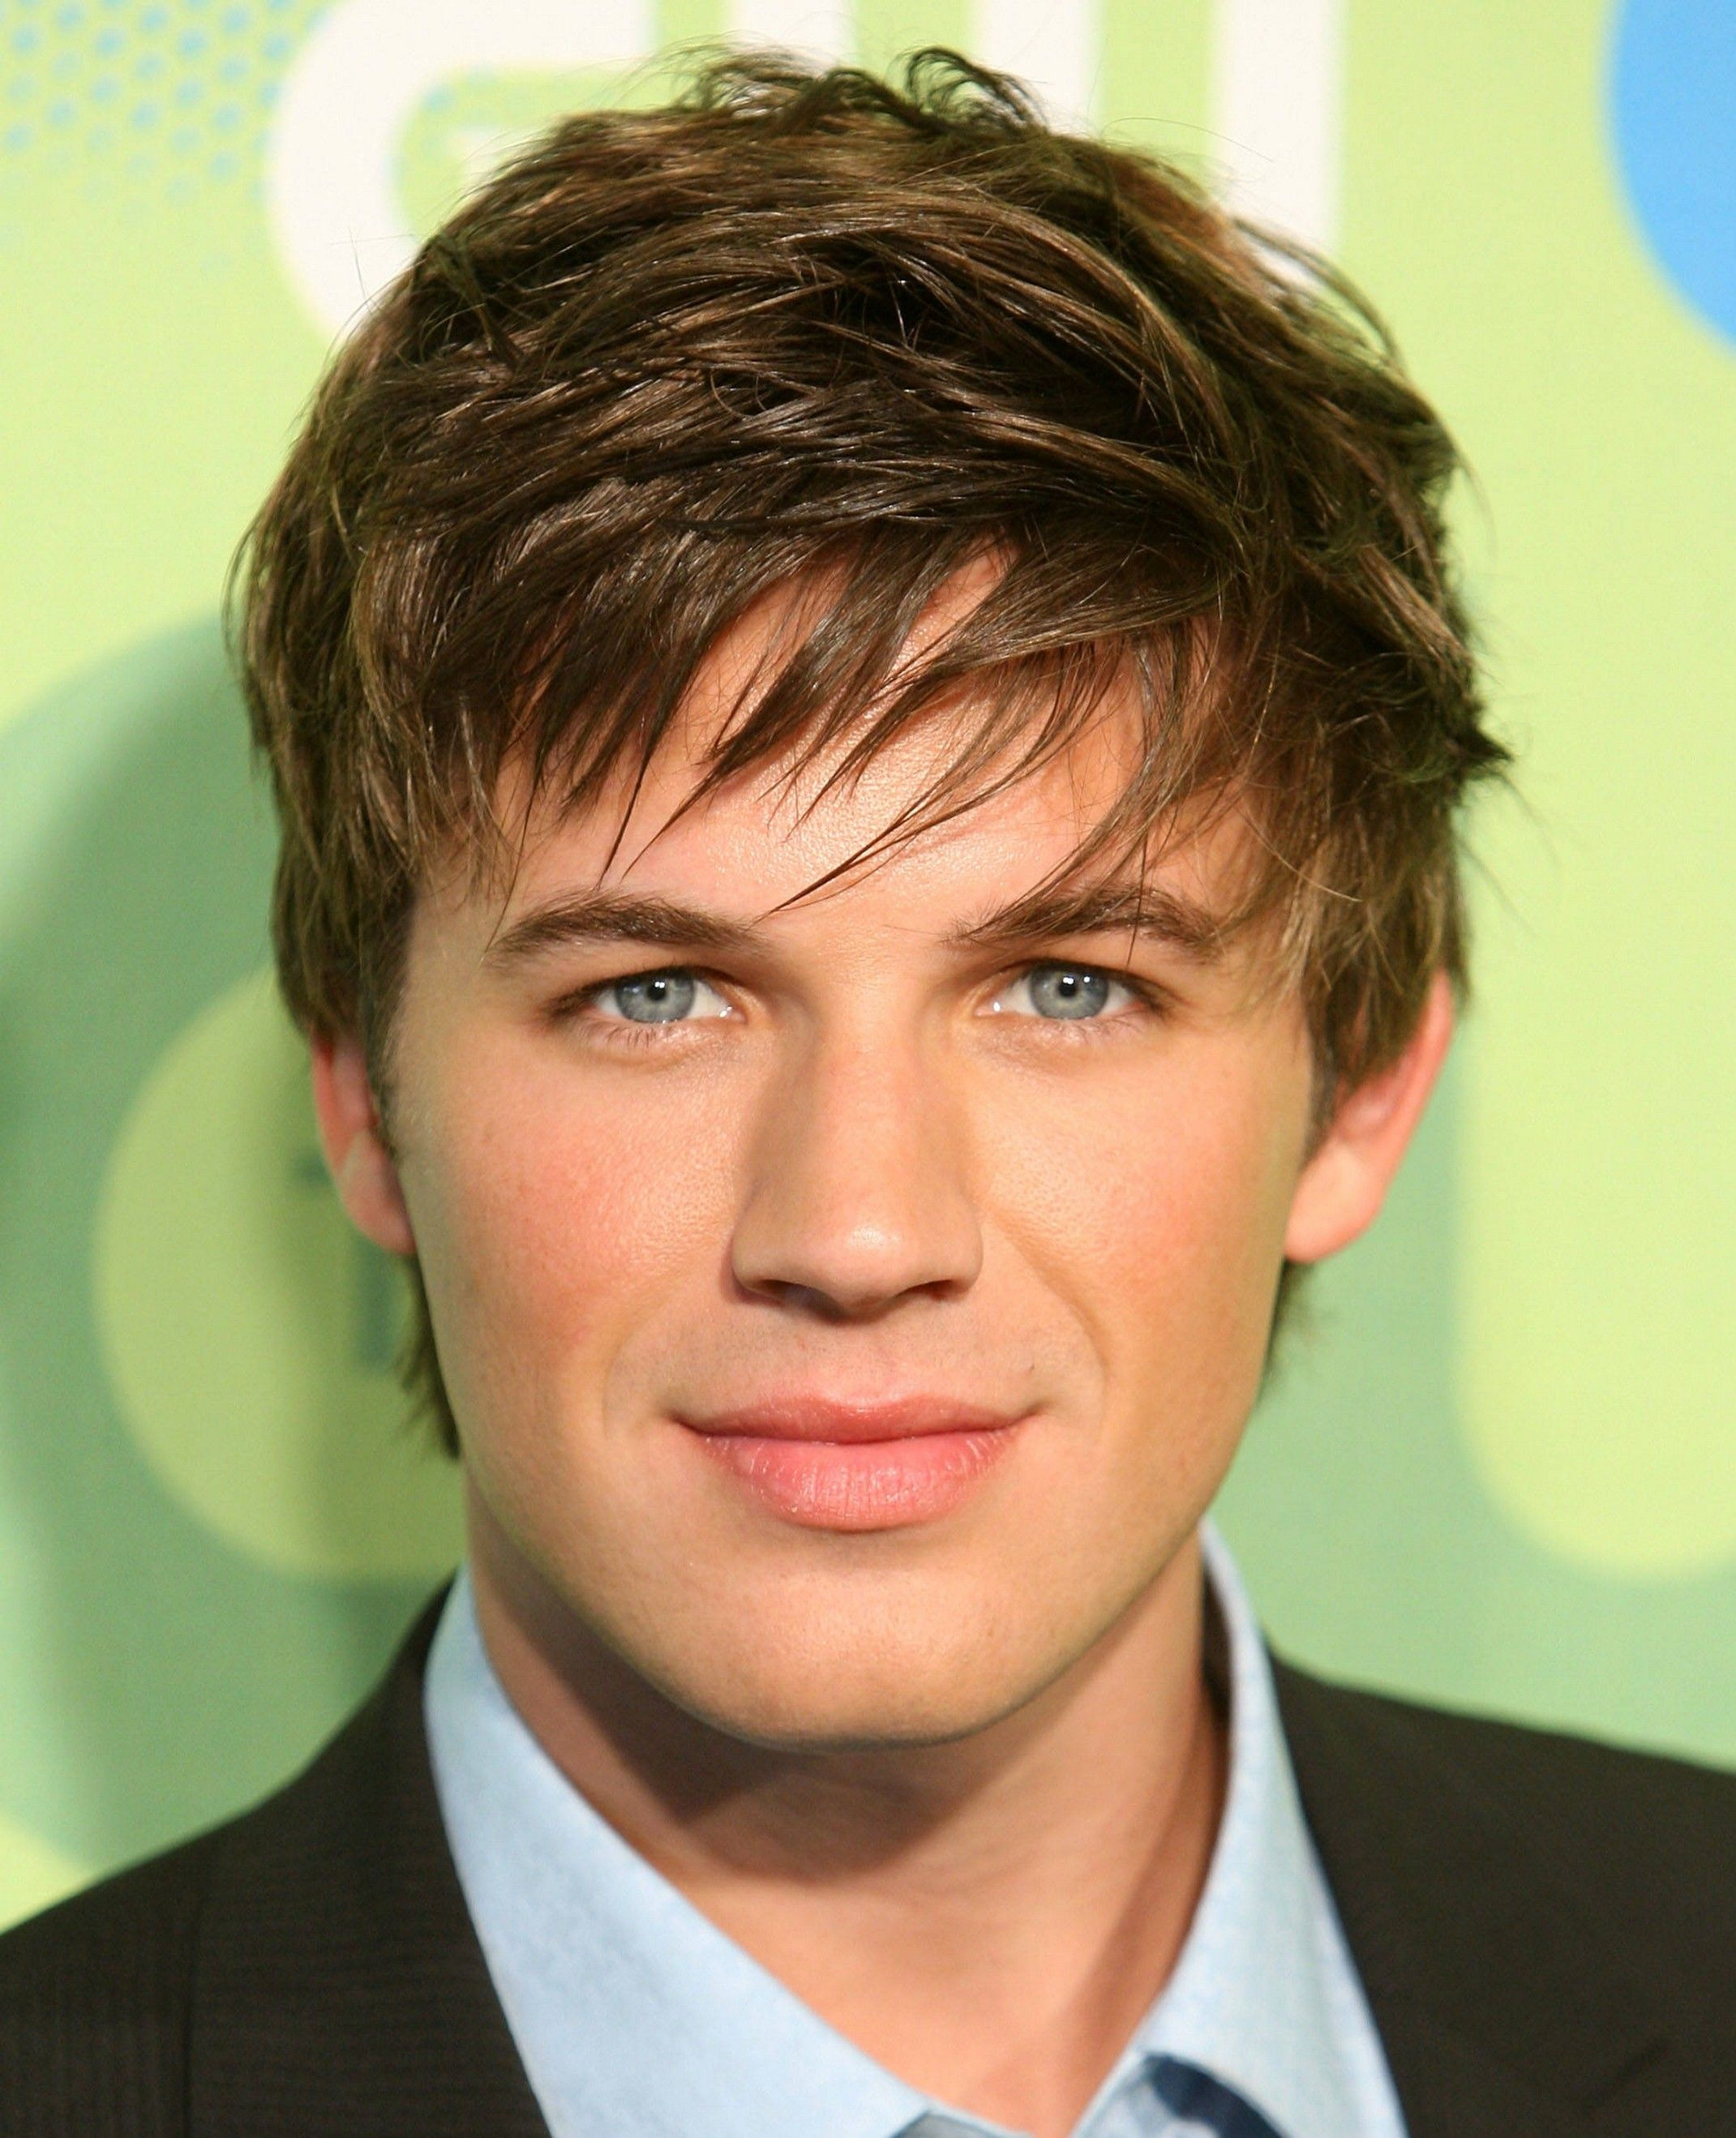 Haircuts for round faces men latest hairstyles for men with round faces  latest hairstyles for